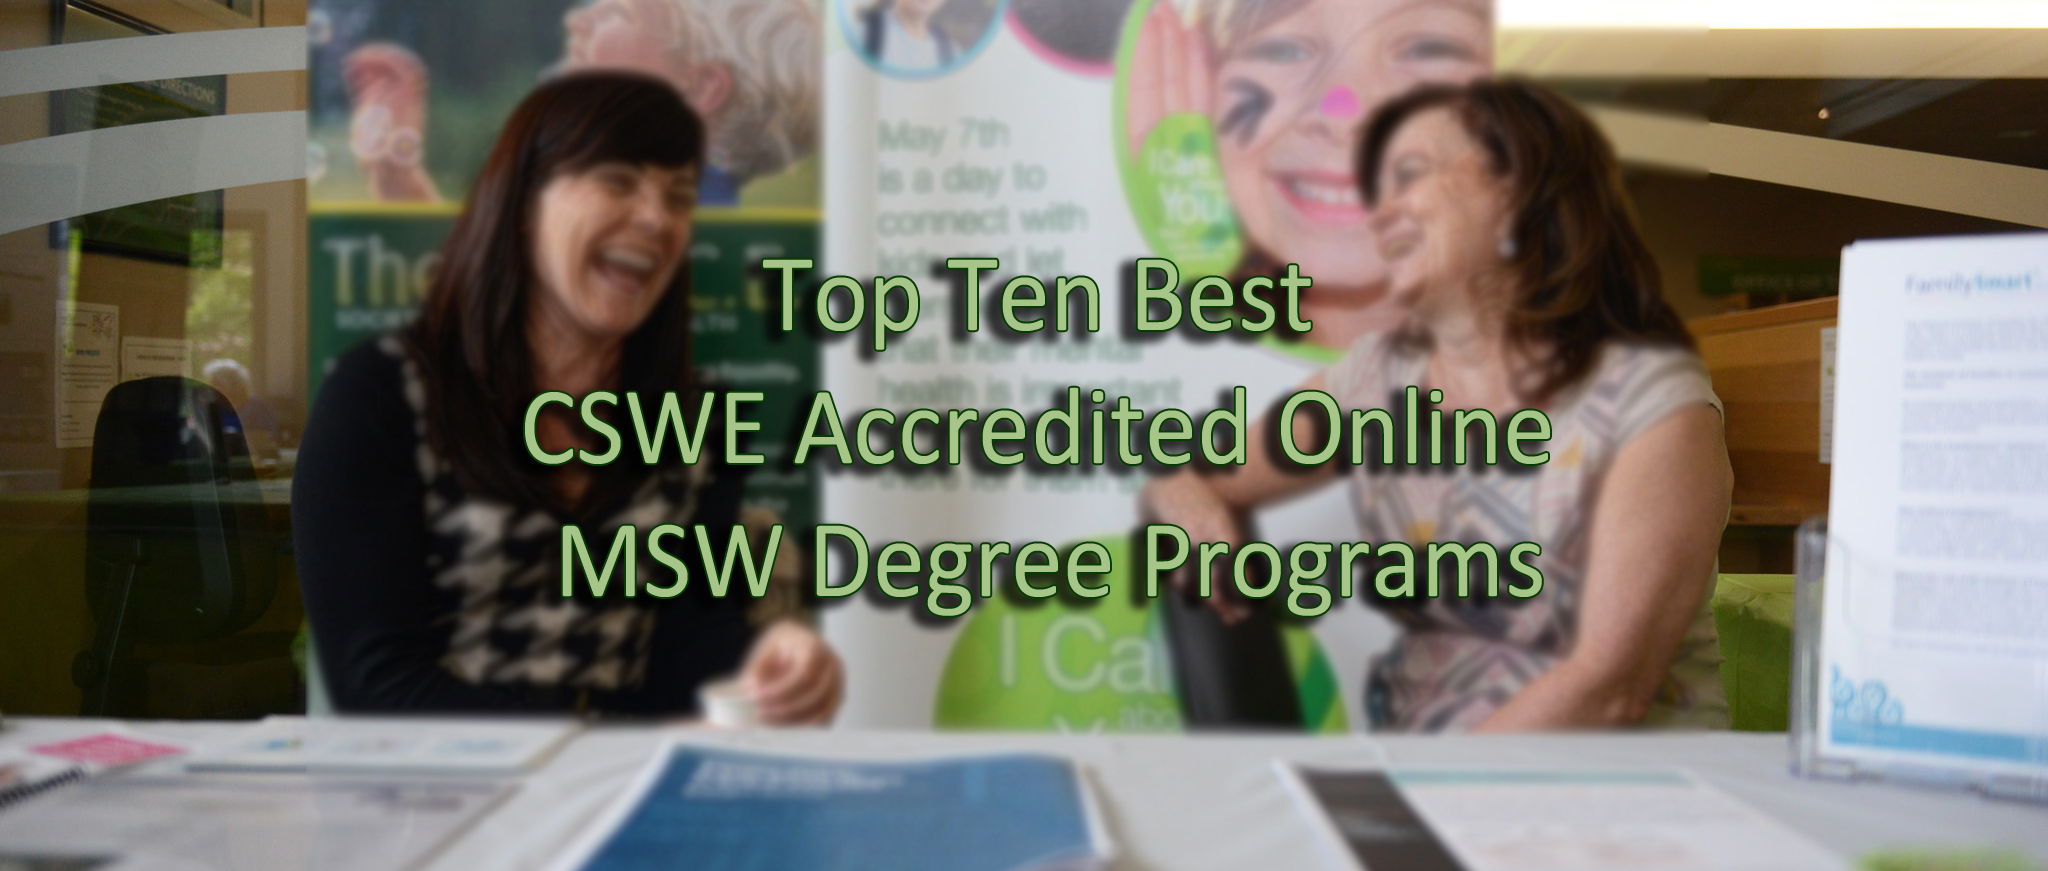 Msw Online Programs >> Top Ten Best Cswe Accredited Online Msw Degree Programs Social